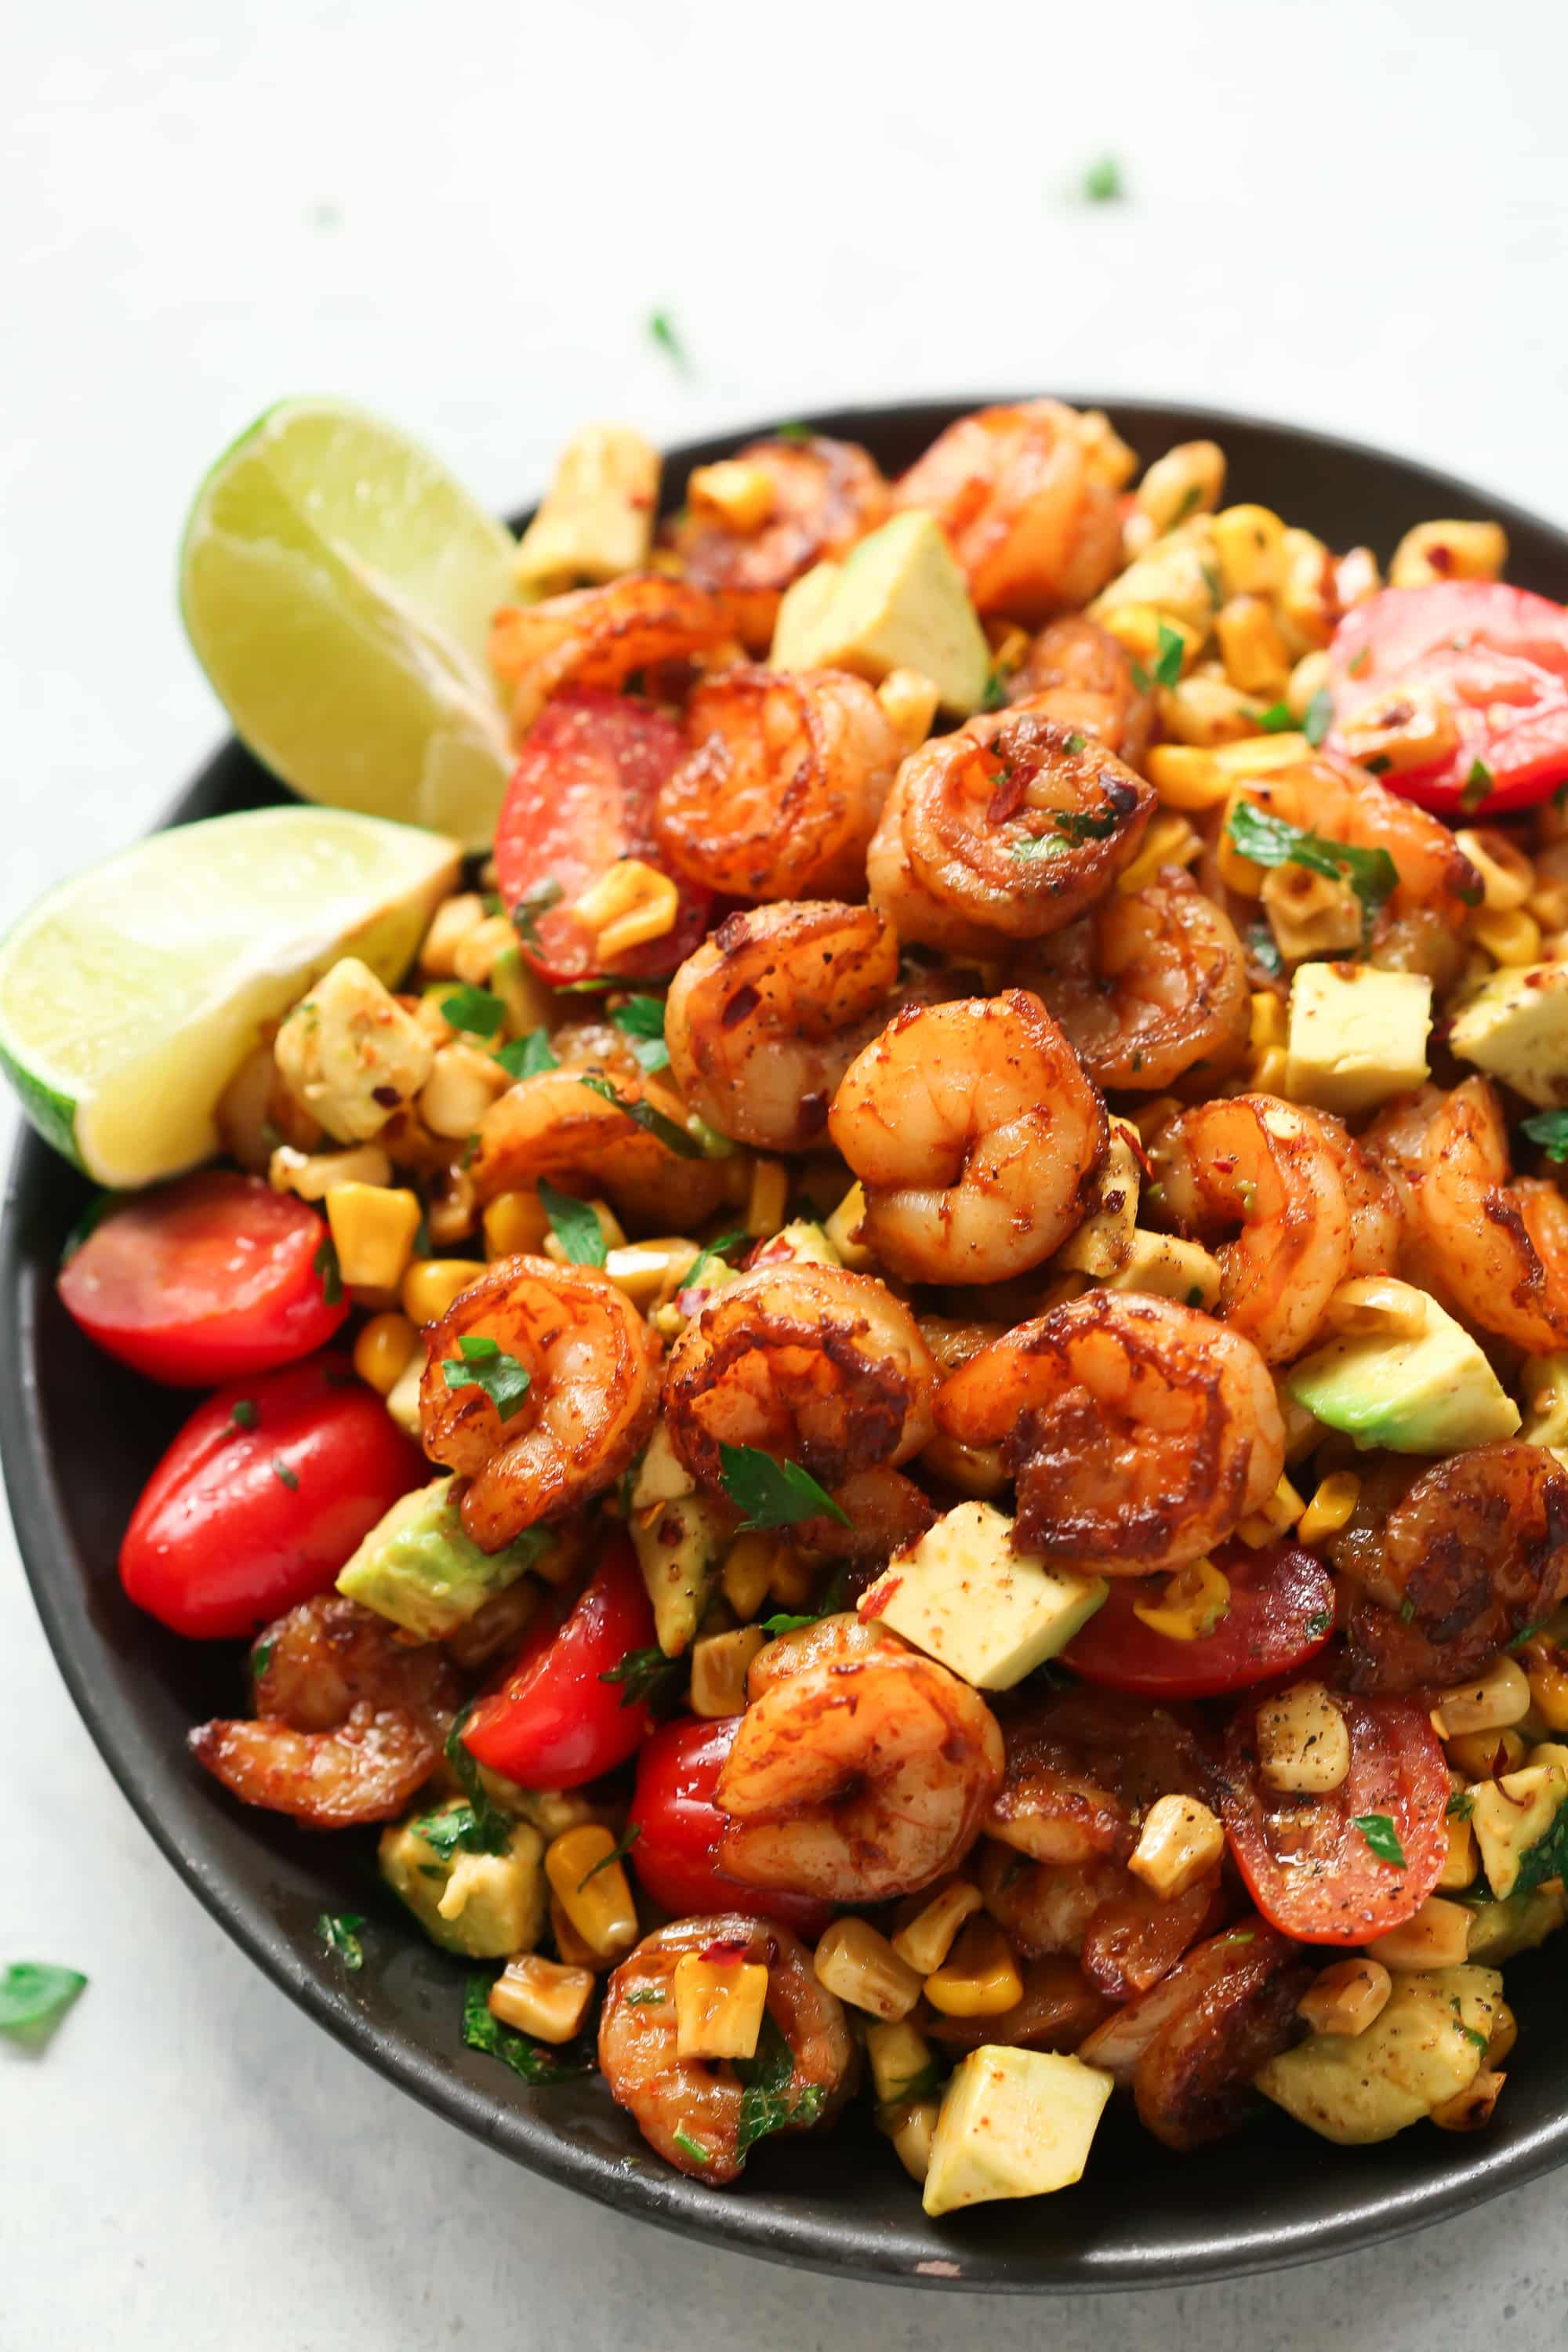 Salad with shrimp. The recipe for a delicious salad with shrimp and avocado 45